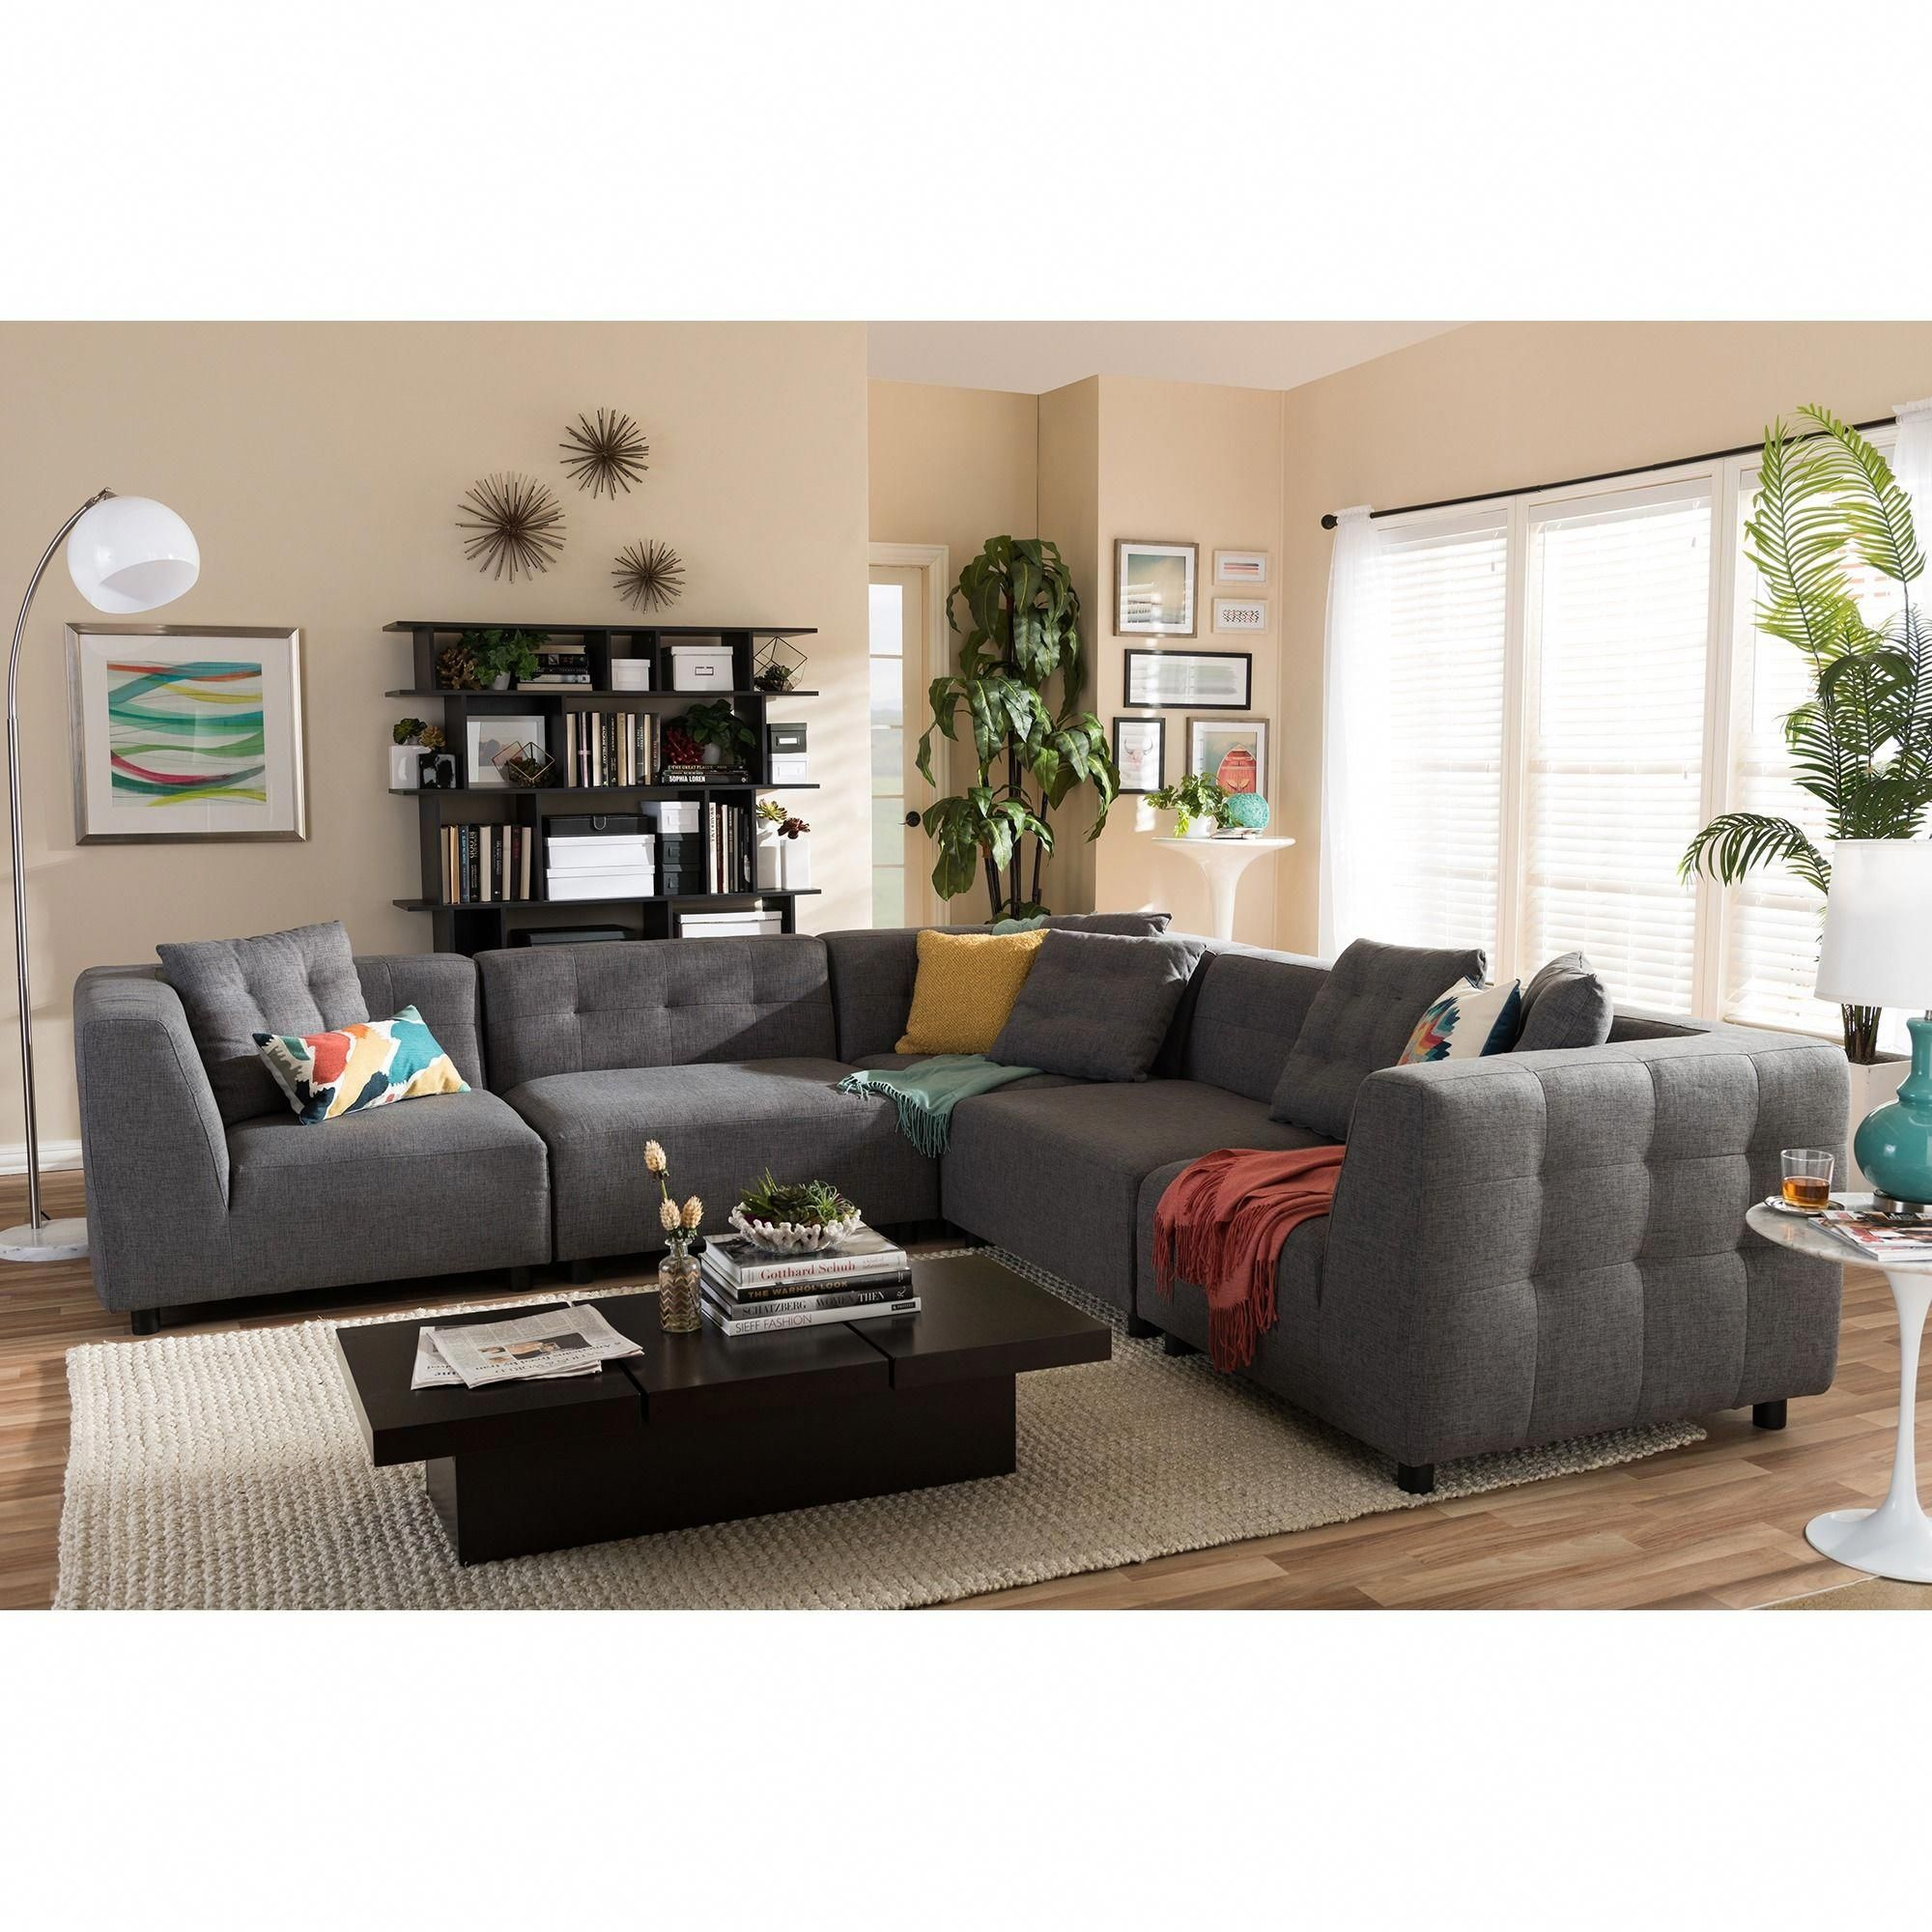 This Alcoa Sectional Sofa Consists Of Five Separate Pieces That Can Be Rearranged To Create The Secti Modern Sofa Sectional Sectional Sofa Sectional Sofa Couch